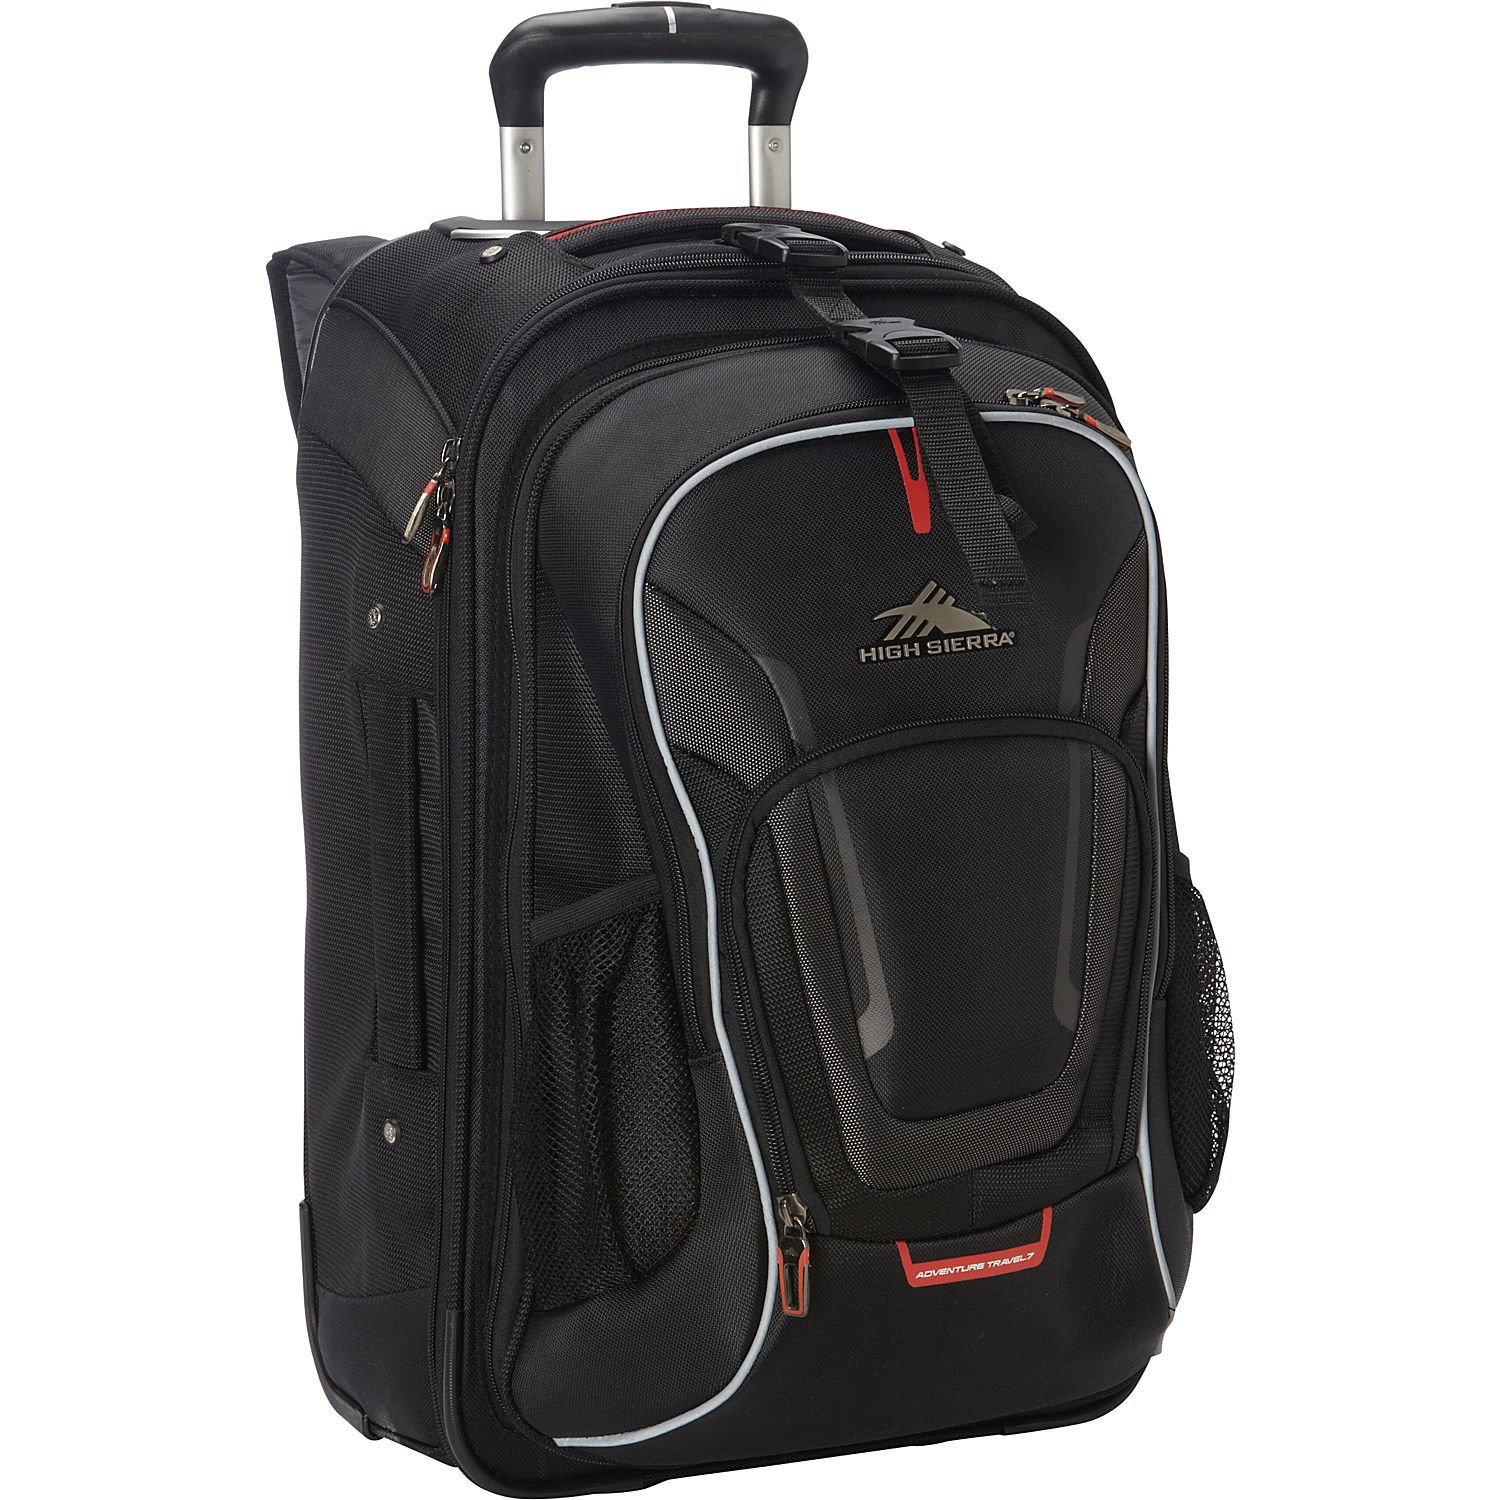 AT7 Carryon Wheeled Backpack with removable daypack Wheeled backpacks